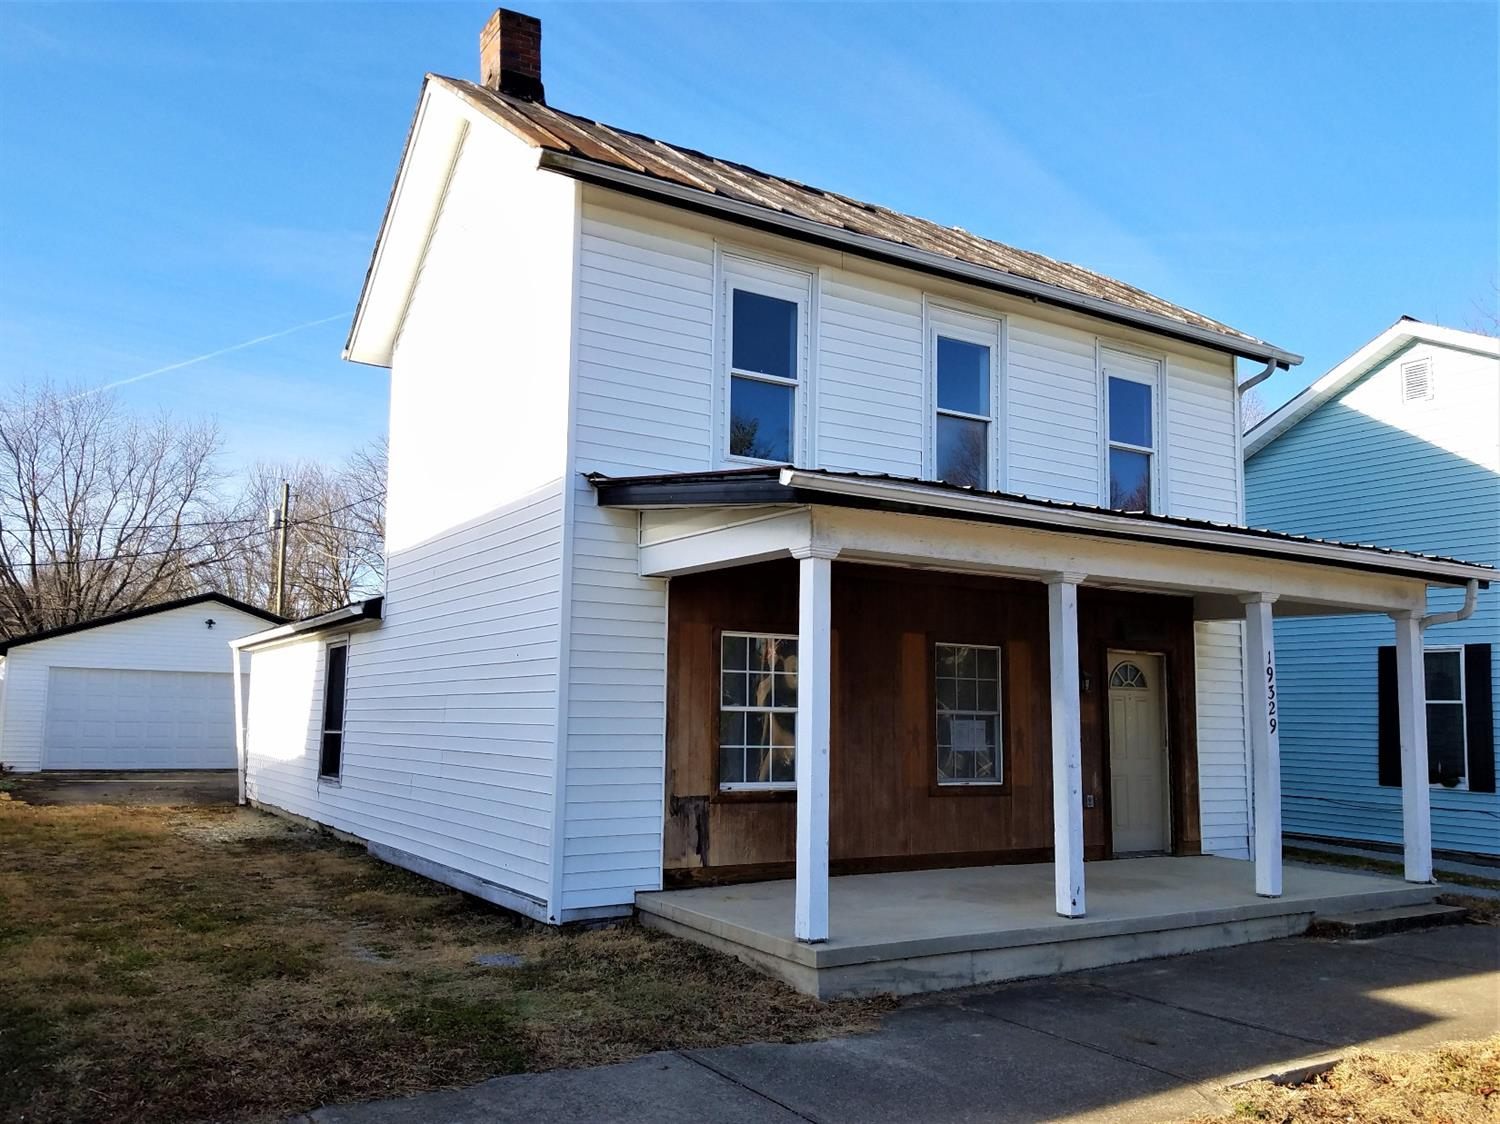 19329 St Rt 136 Adams Co Oh 45697 Listing Details Mls